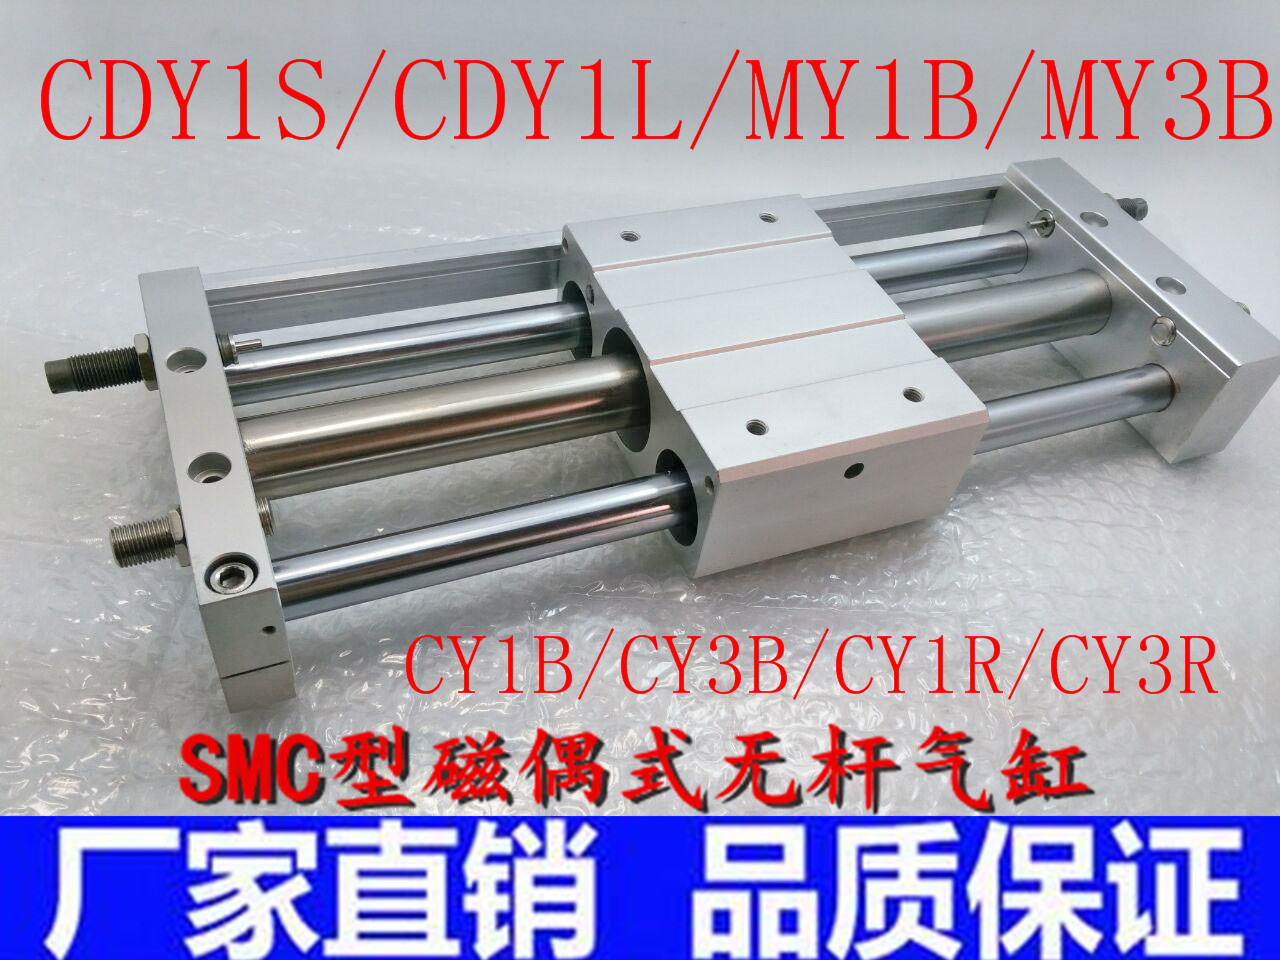 SMC basic magnetic lotus root rodless cylinder CY1S40-100CDY1S40-150/300/400/500/600